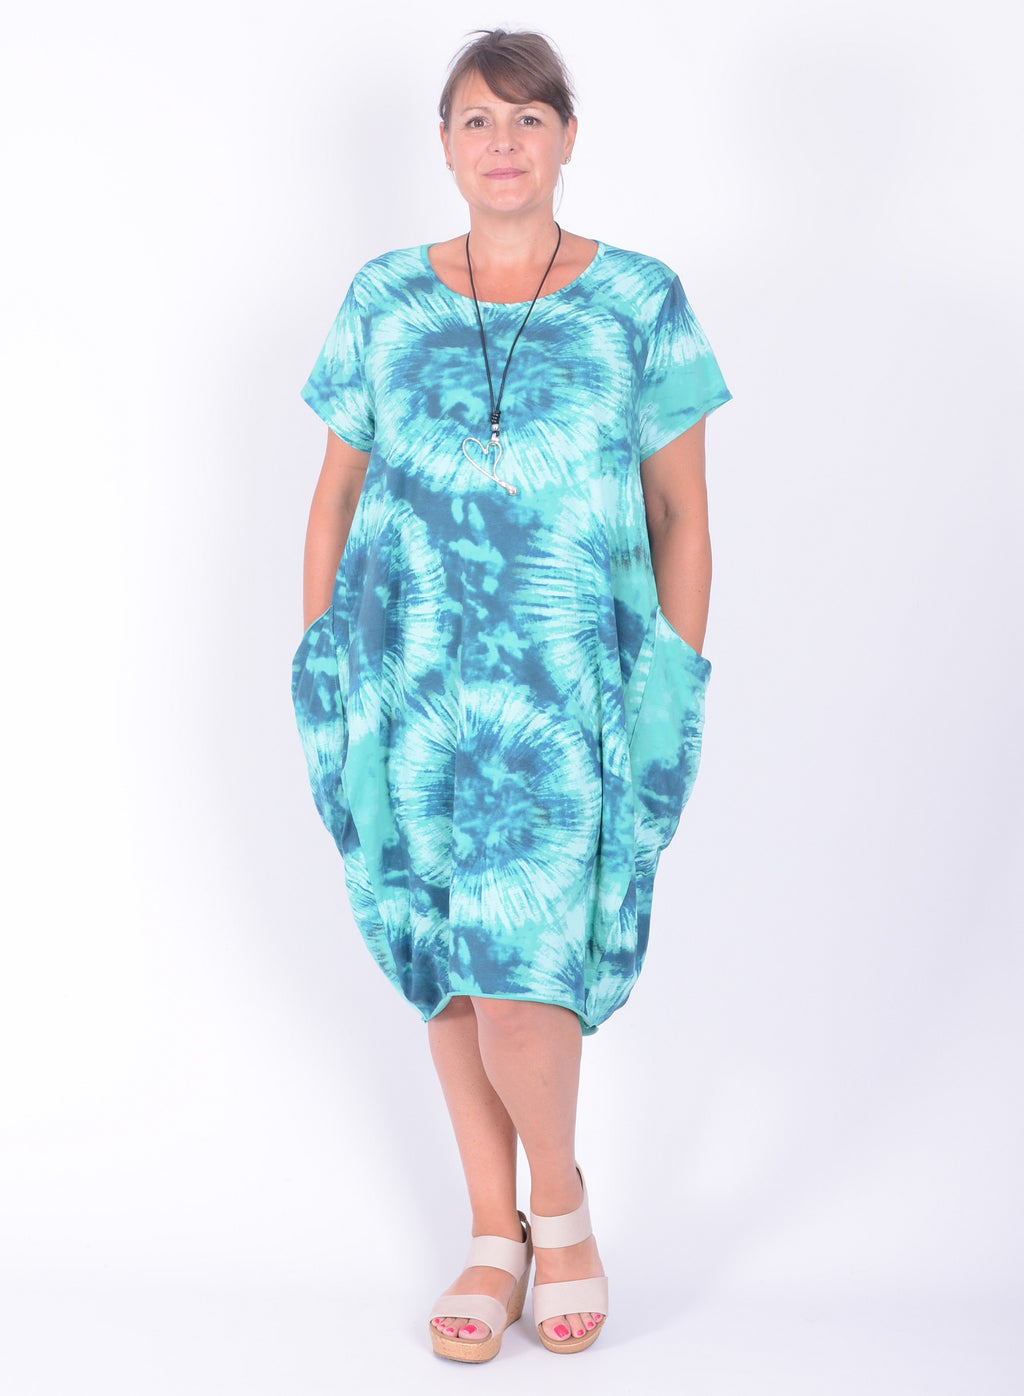 Tie Dye Circle Print Cotton Lagenlook Dress - 7080 - Pure Plus Clothing